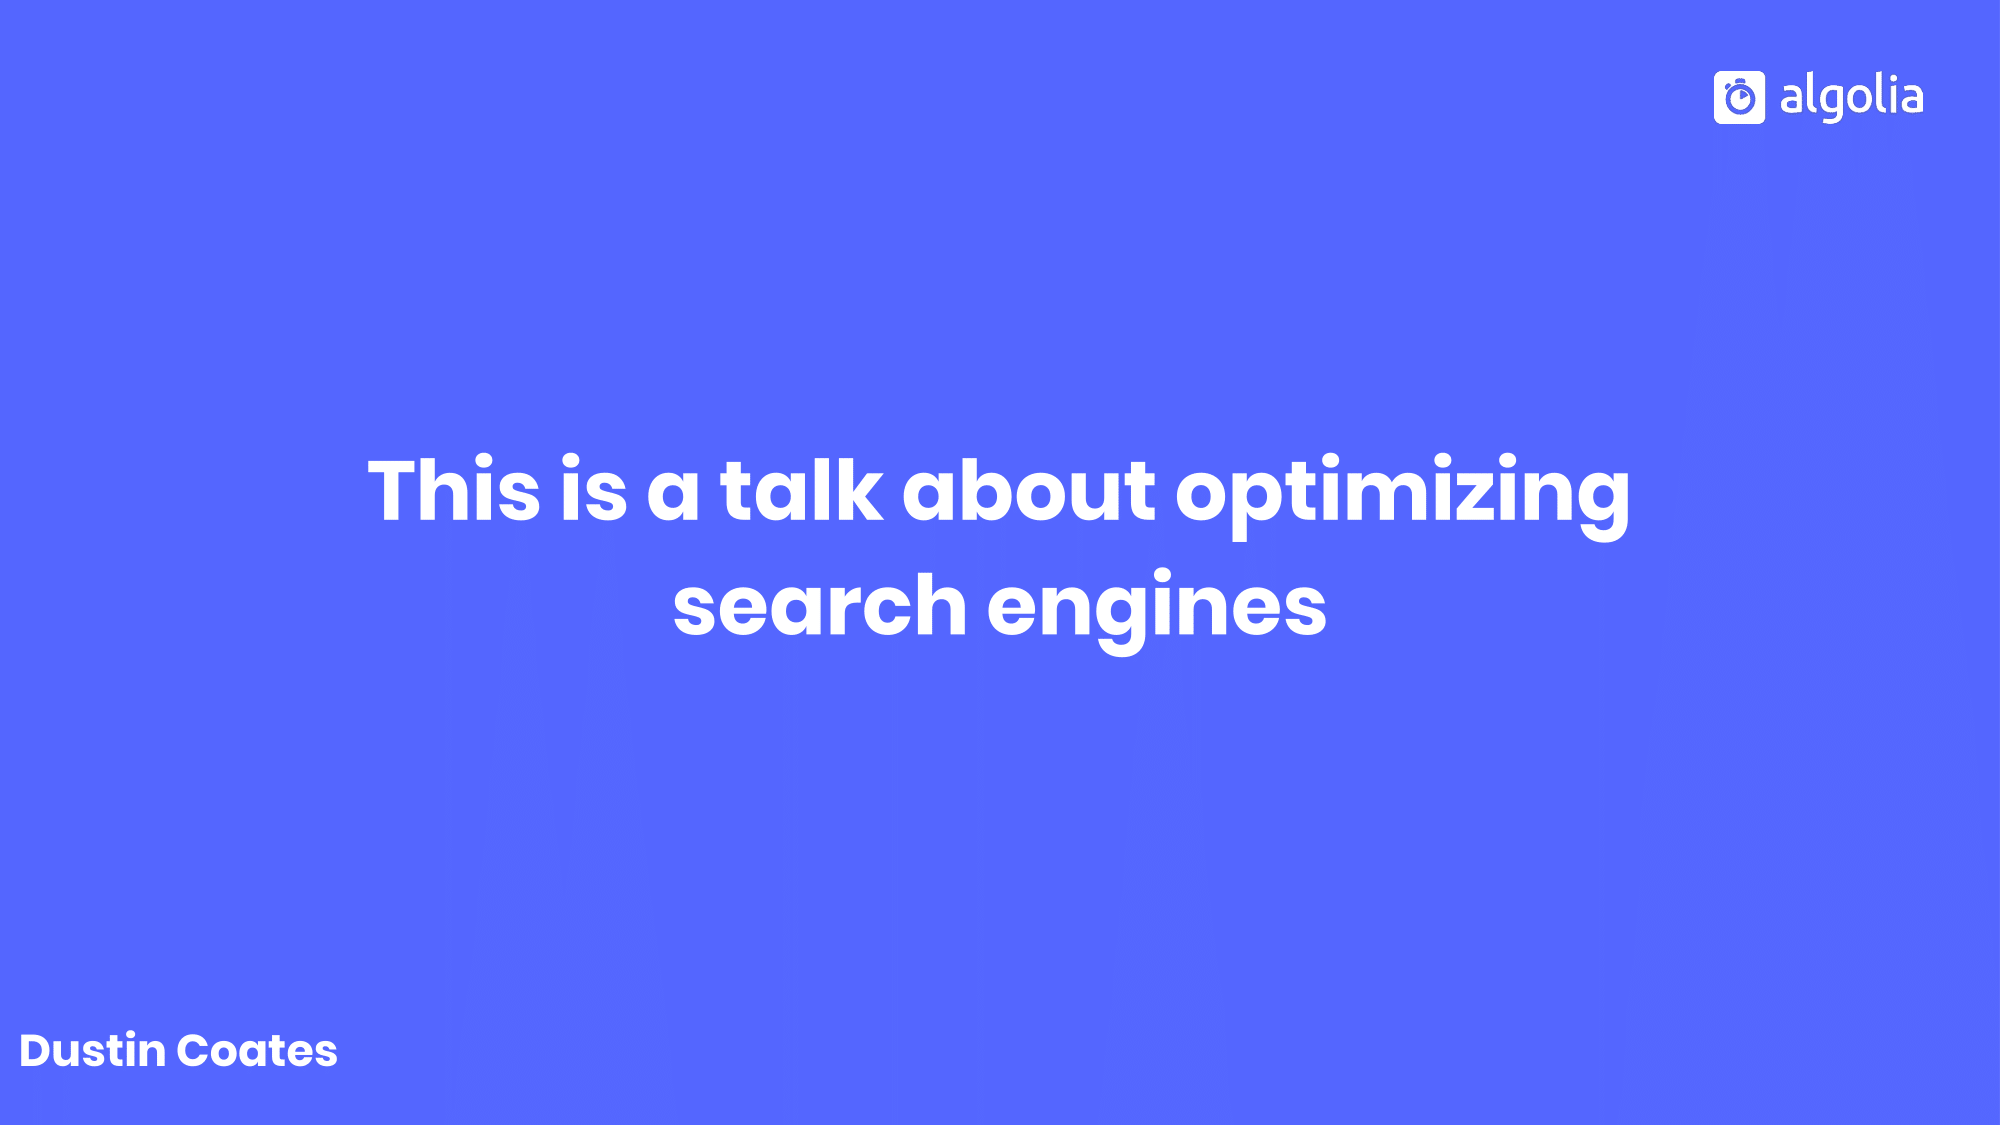 This talk is about optimizing search engines